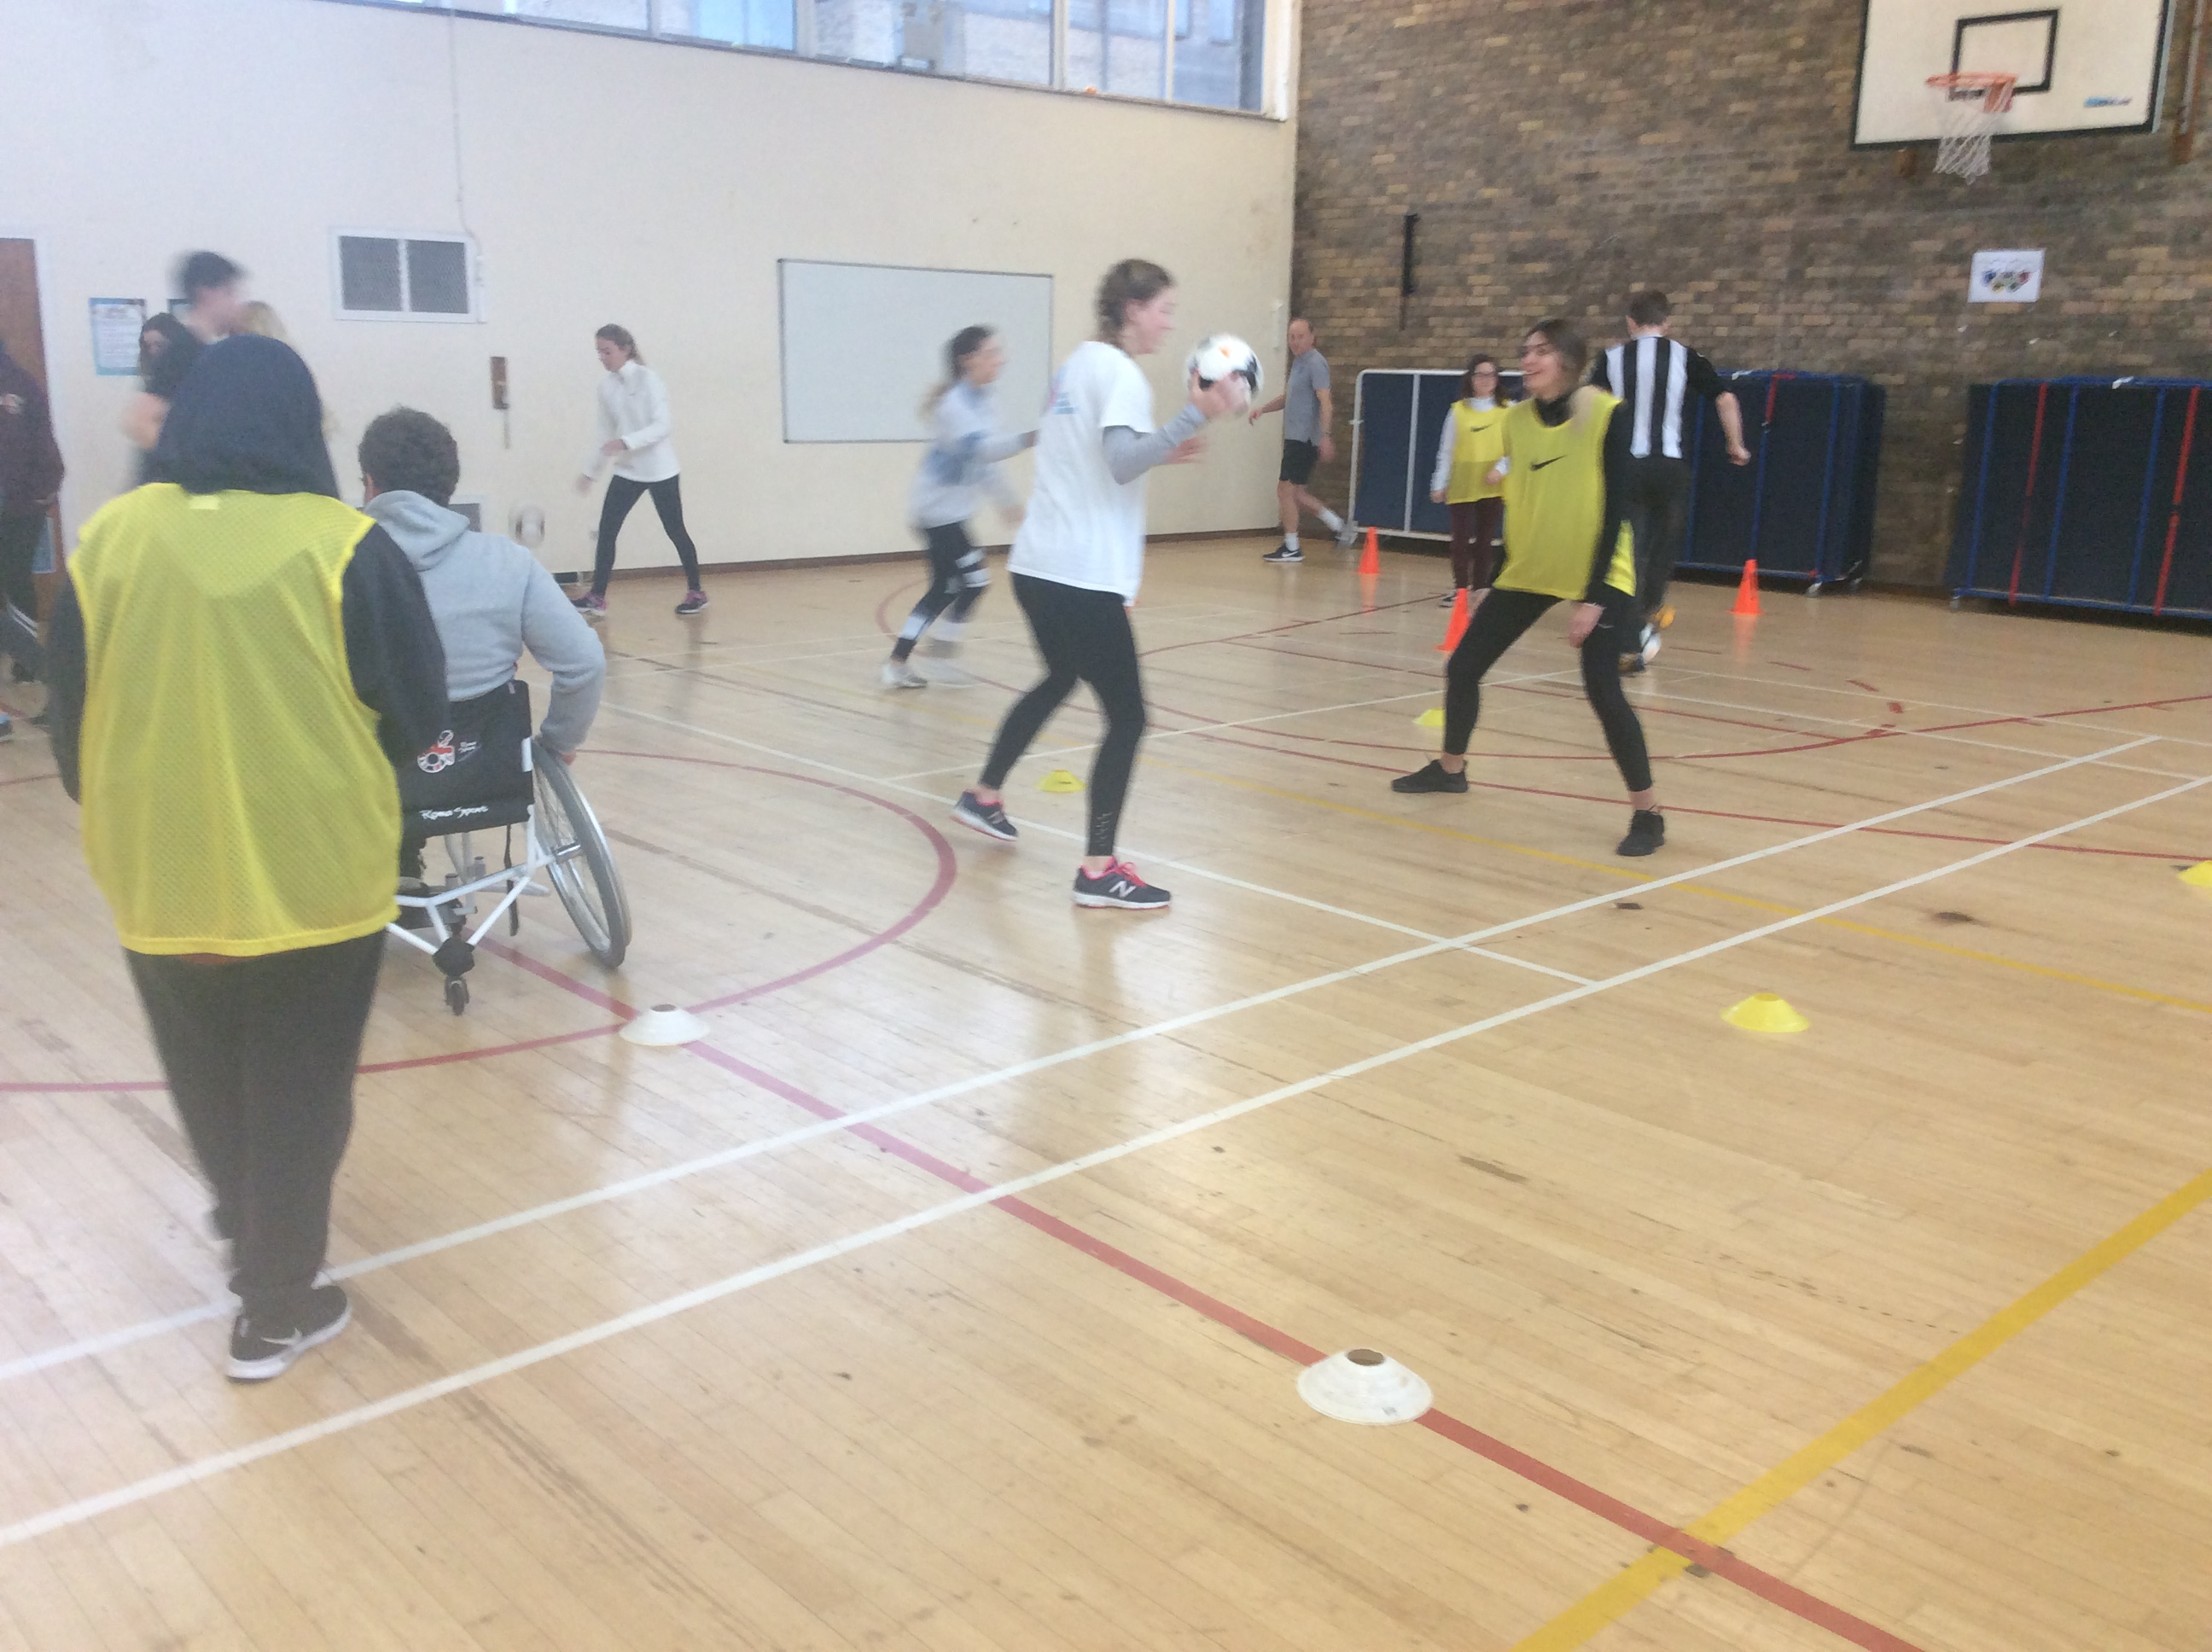 Football inspires trainee teachers